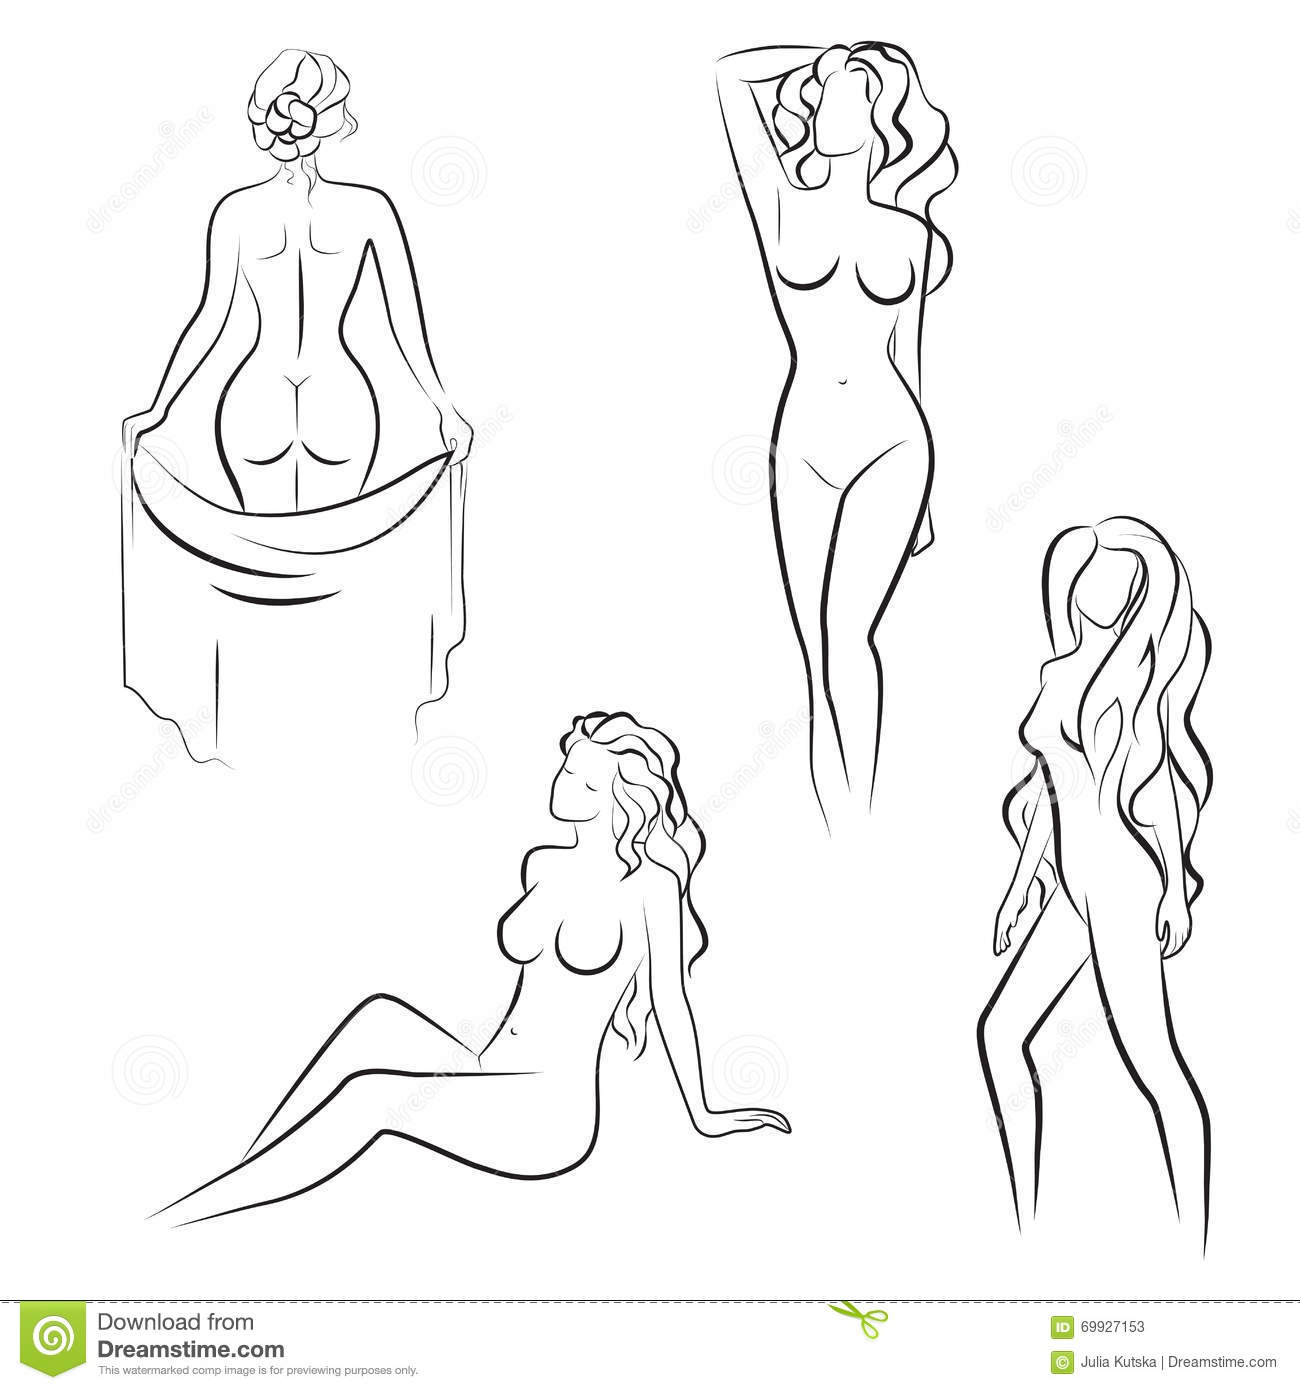 Continuous line drawing naked young girl vector image